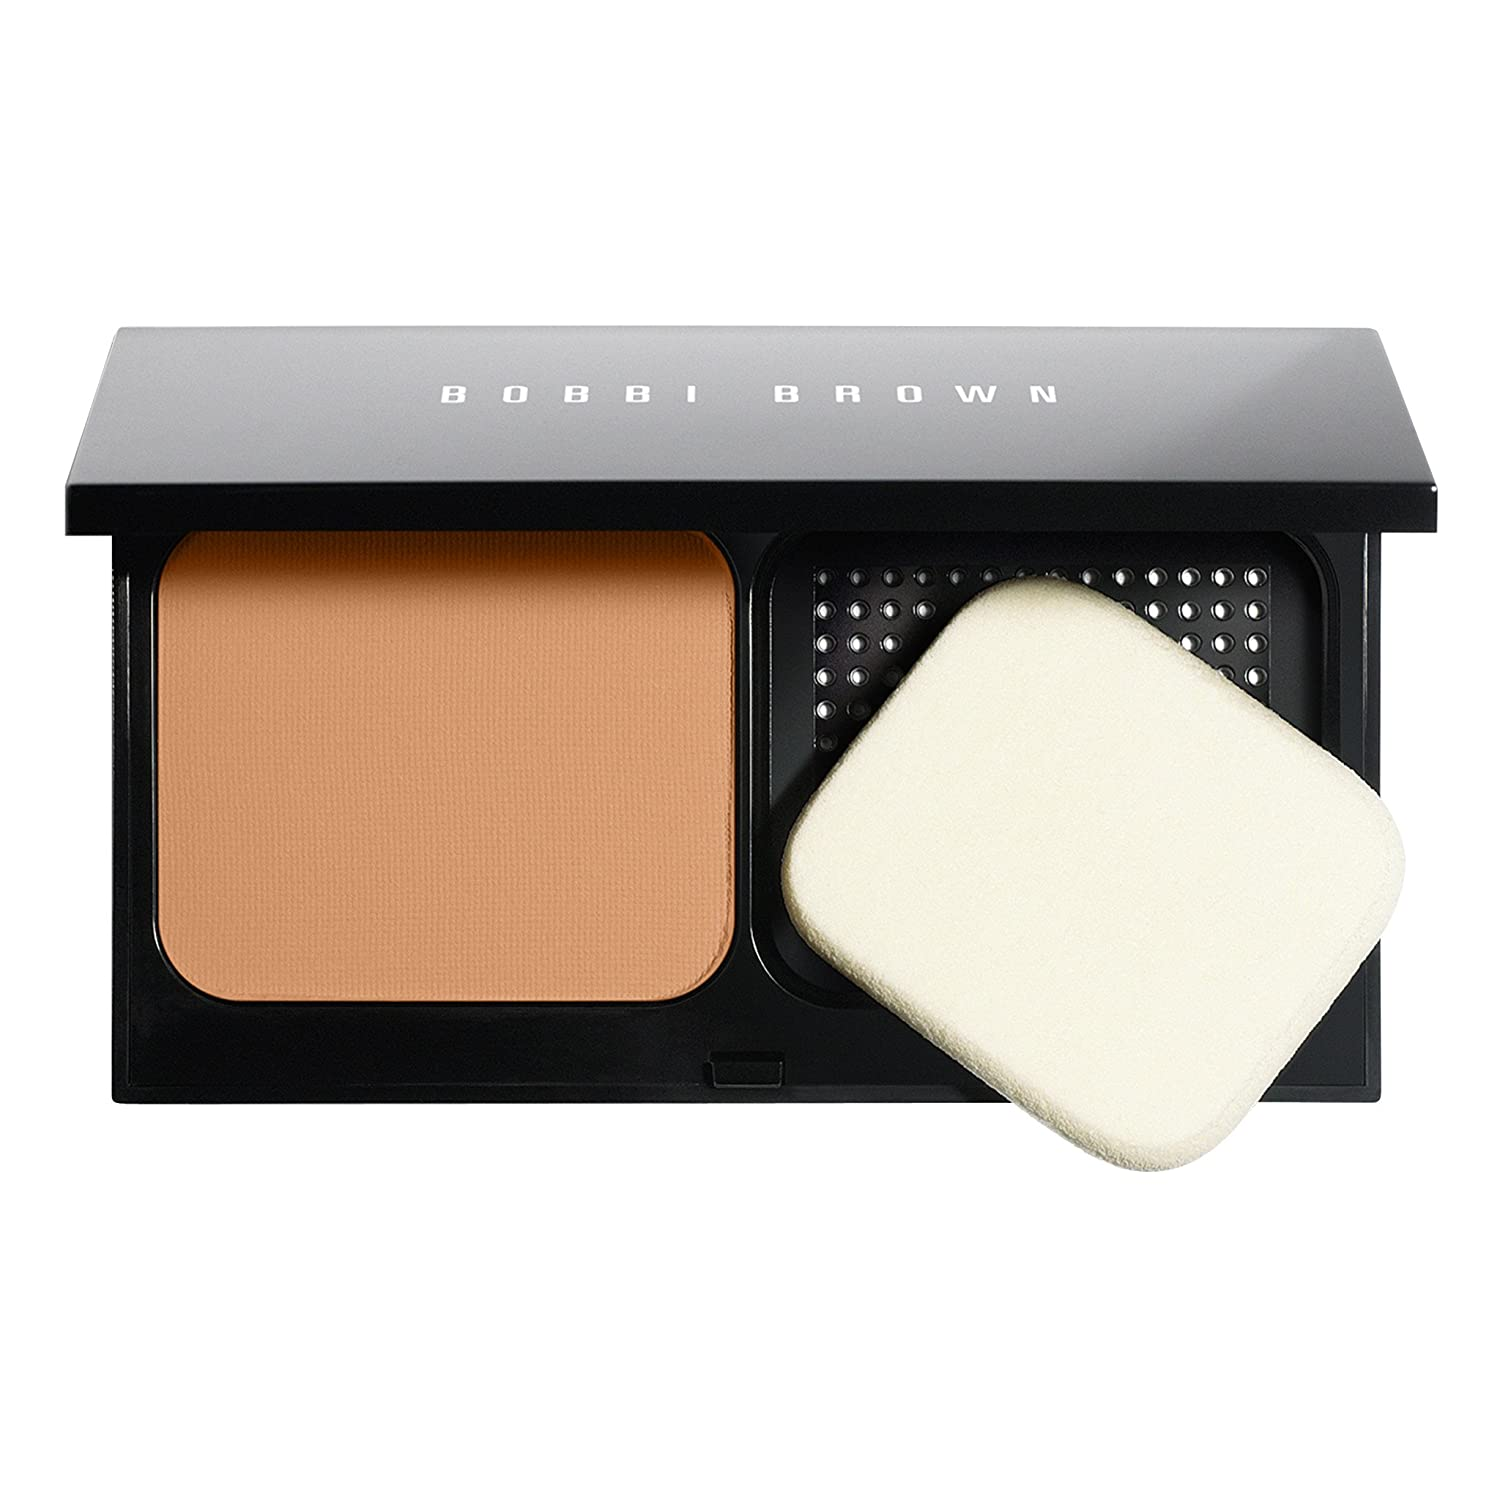 Skin Weightless Powder Foundation by Bobbi Brown